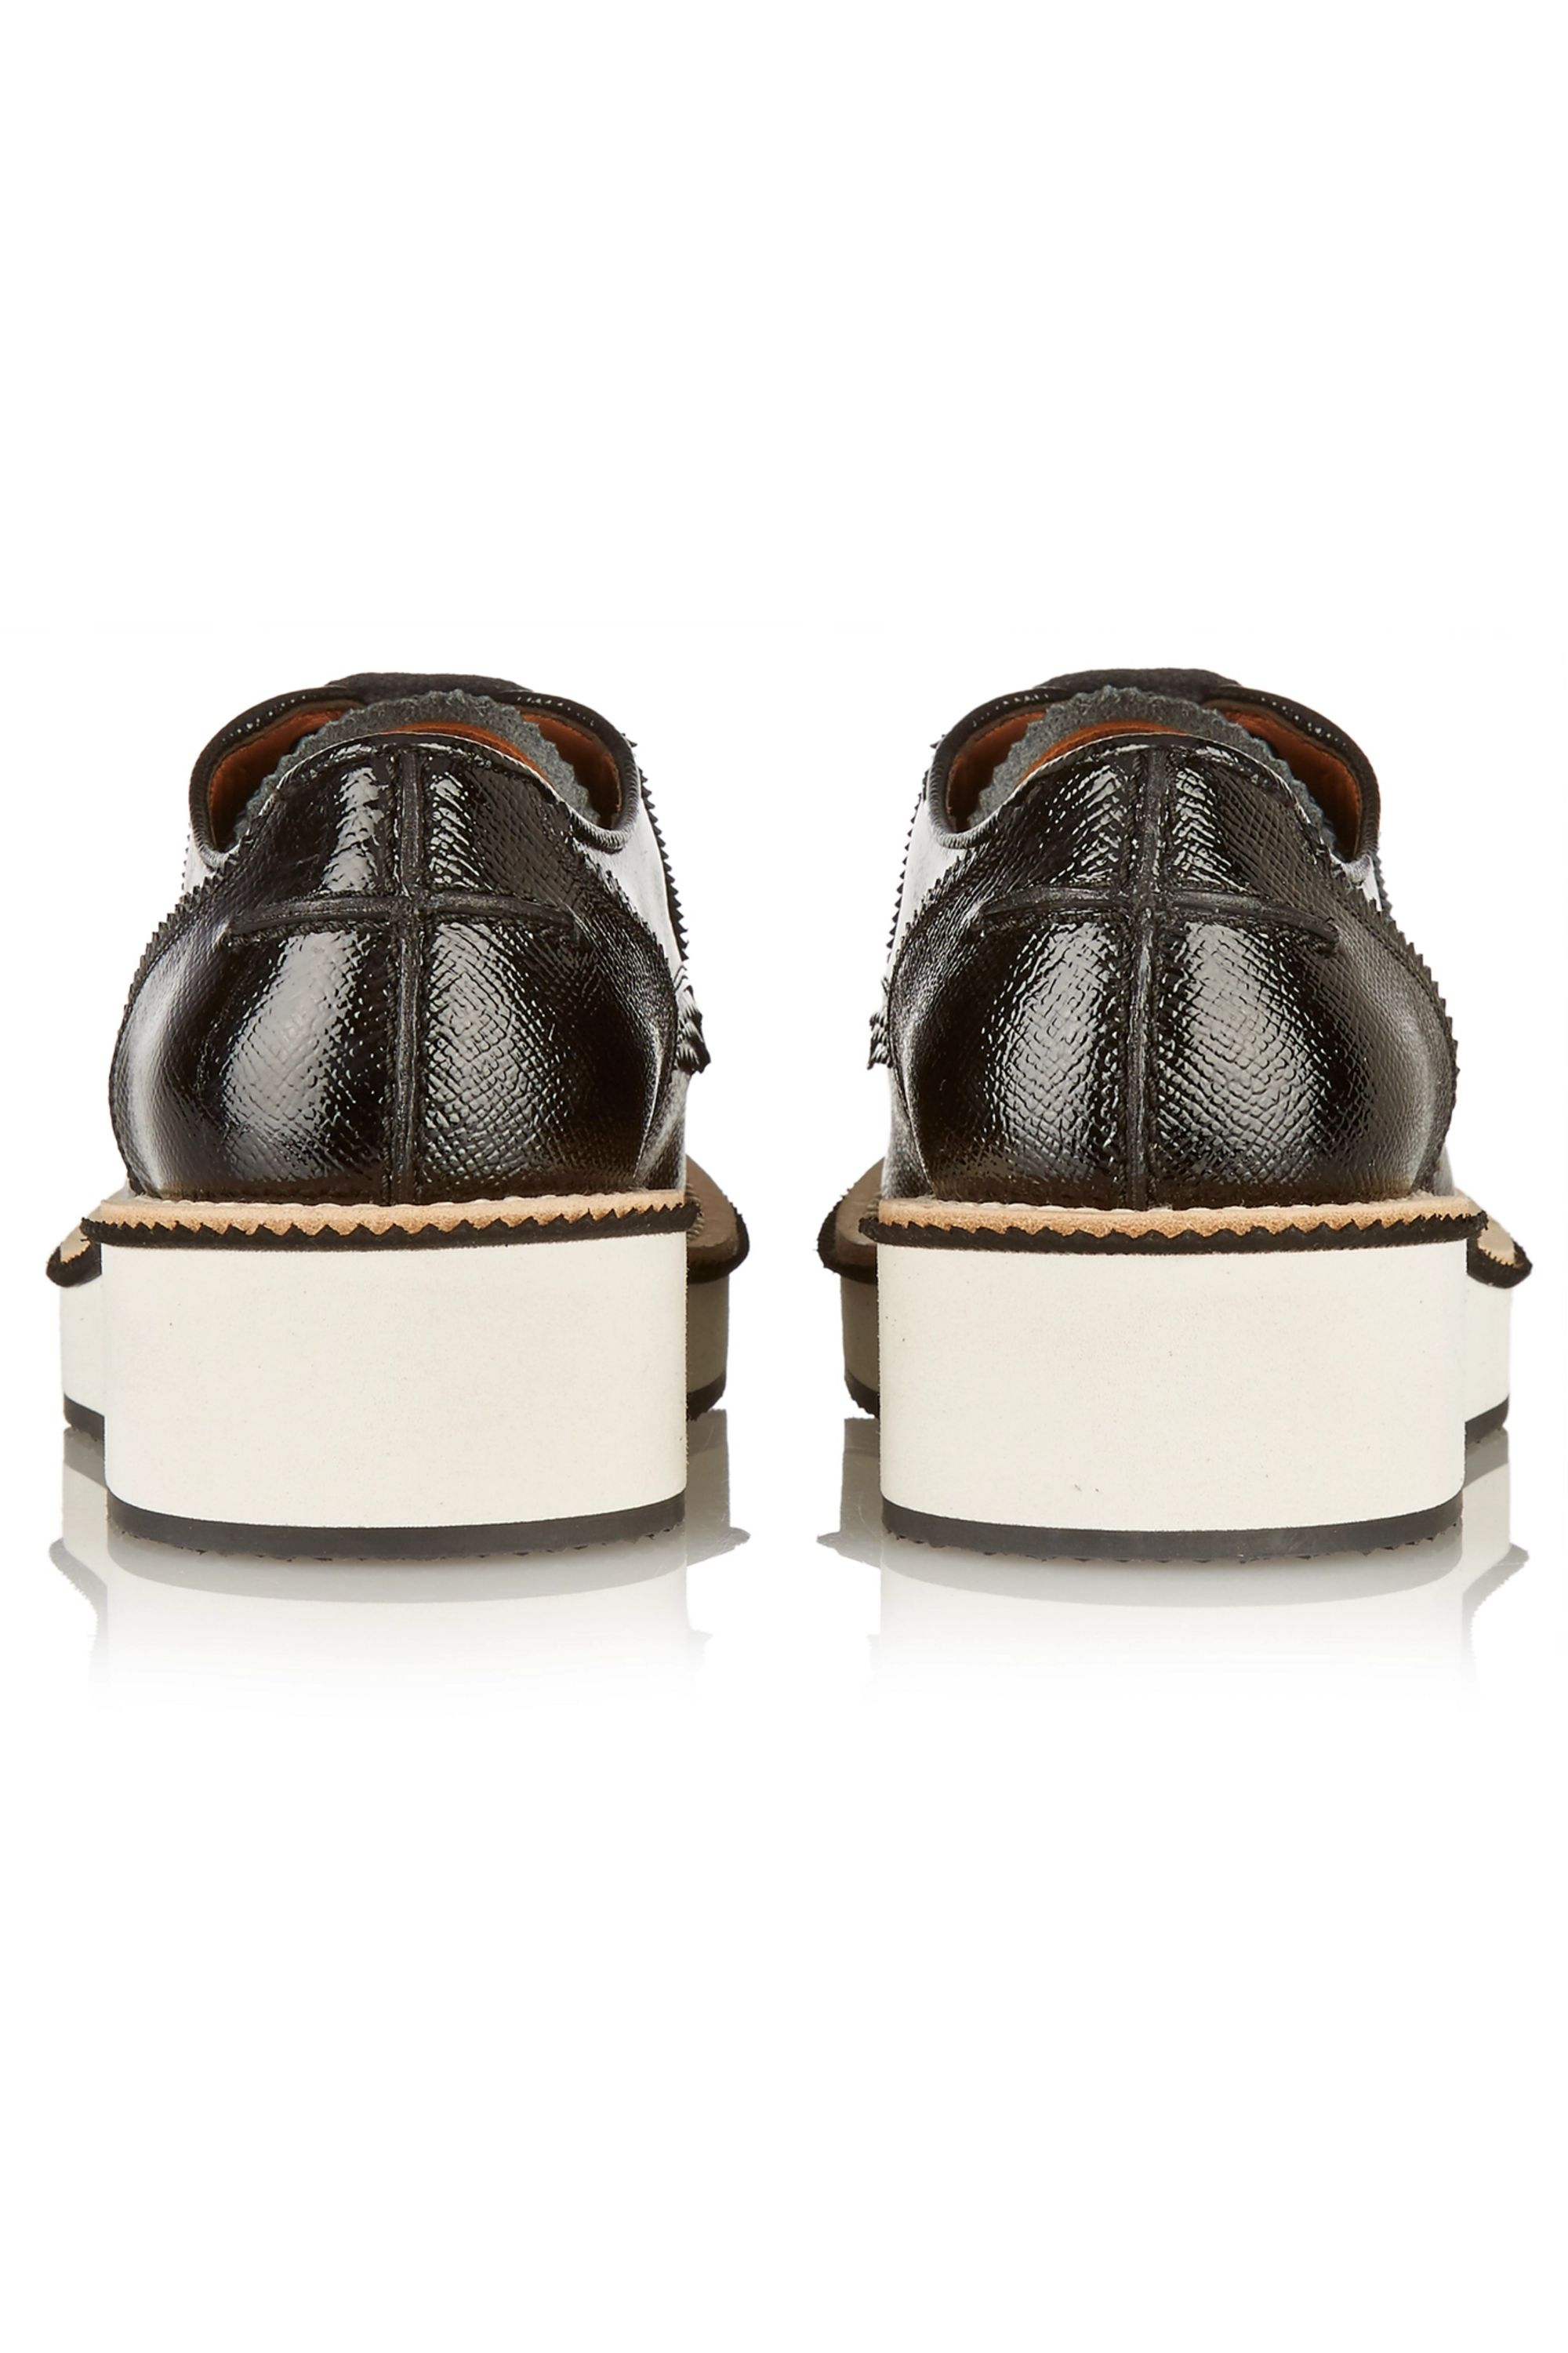 Givenchy Fringed platform brogues in black leather